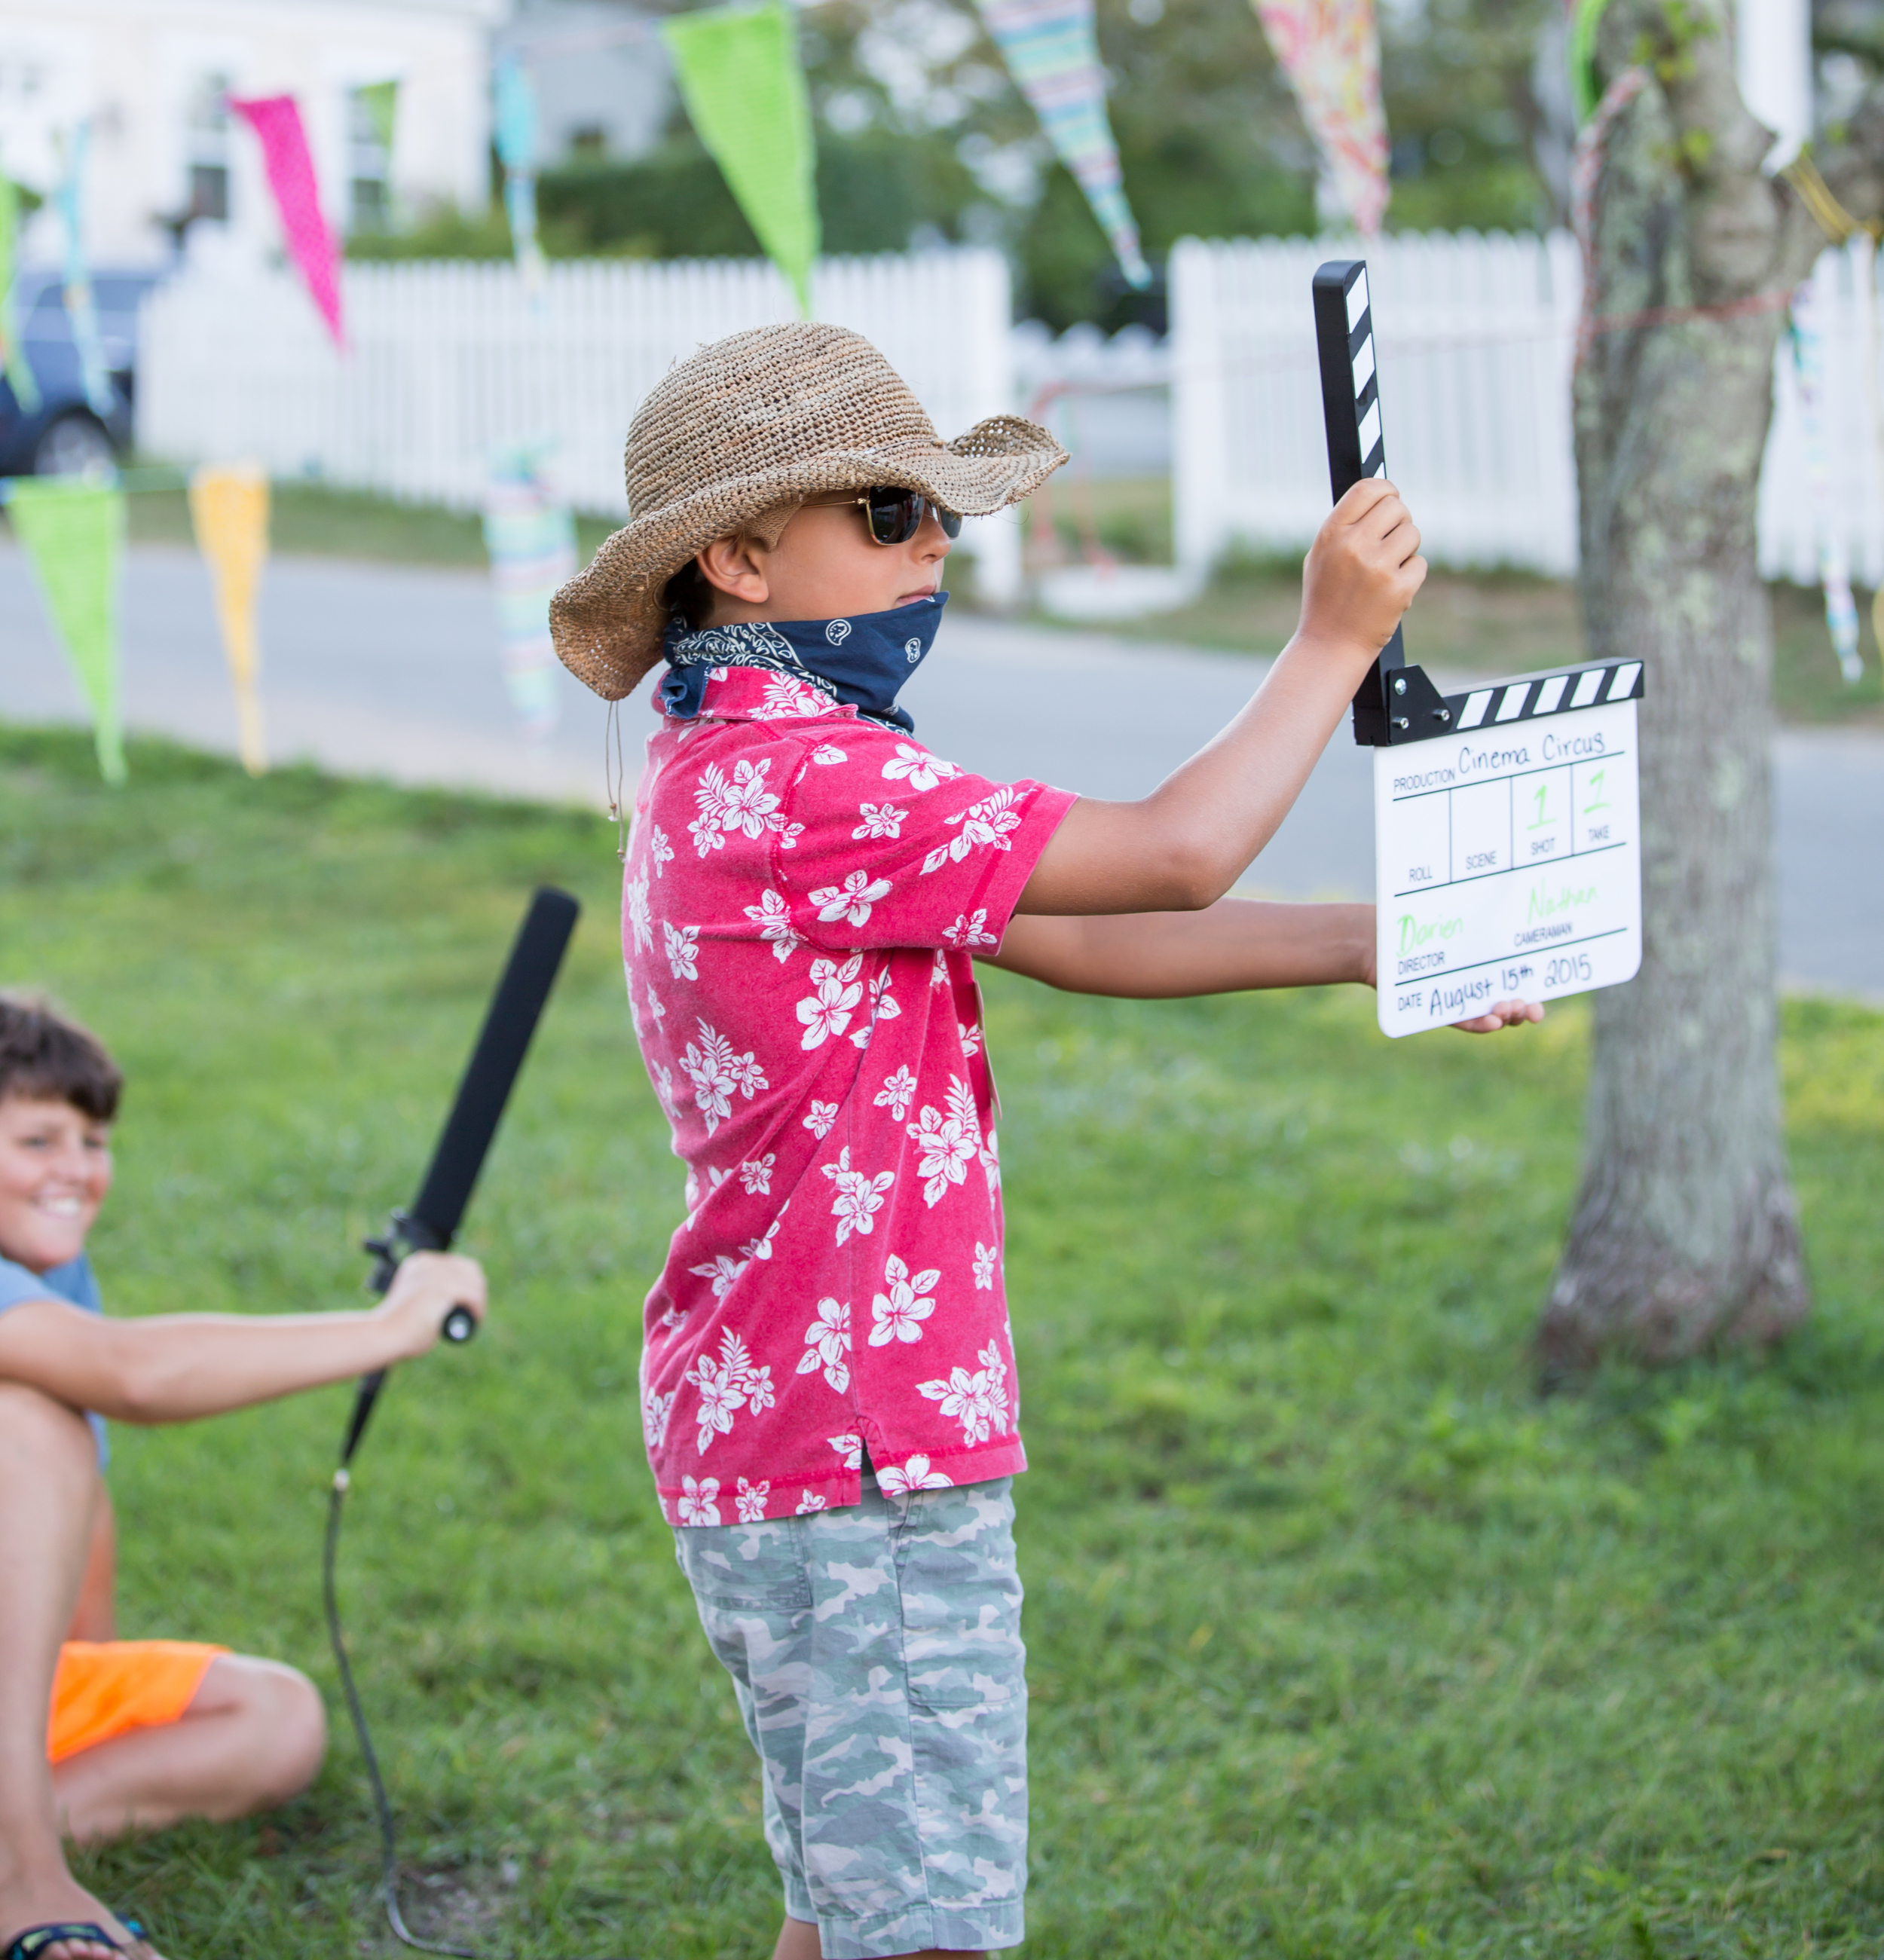 Kids film and star in a short film during the free workshop before the screening of BECOMING BULLETPROOF on August 13, 2015,at Owen Park in Vineyard Haven.Photo by Maria Thibodeau.